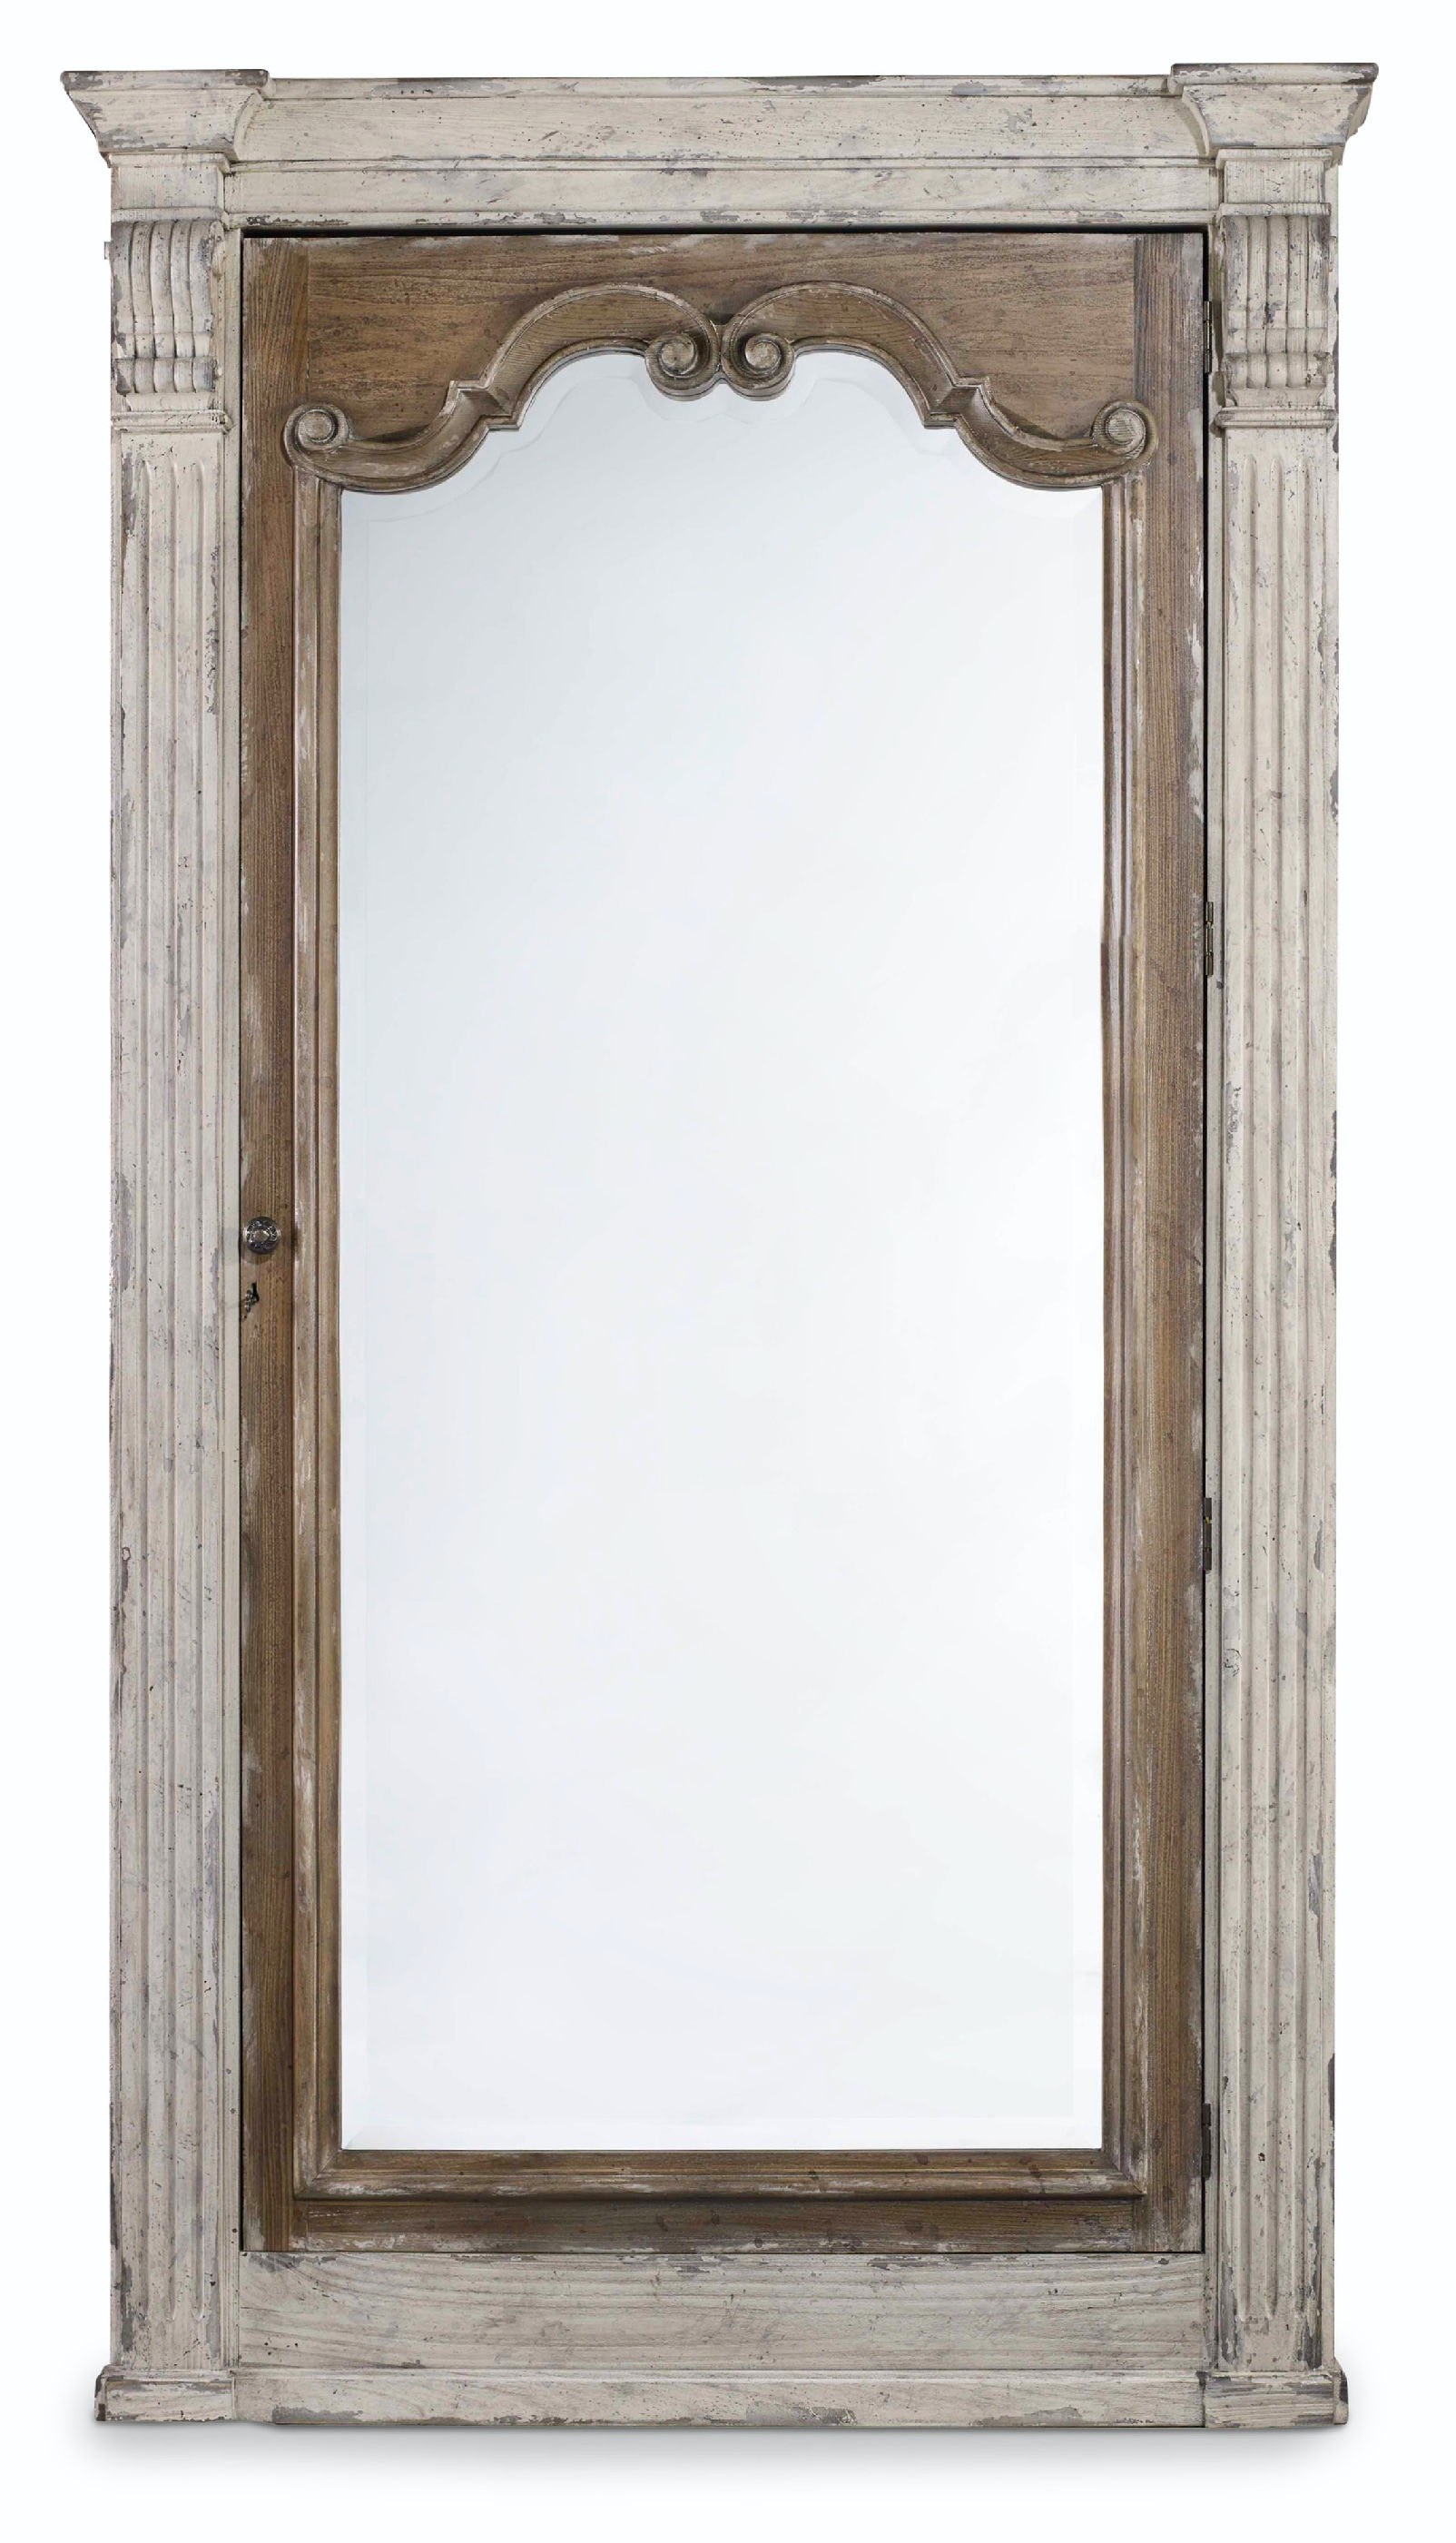 Hooker Furniture Accents Chatelet Floor Mirror wJewelry Armoire